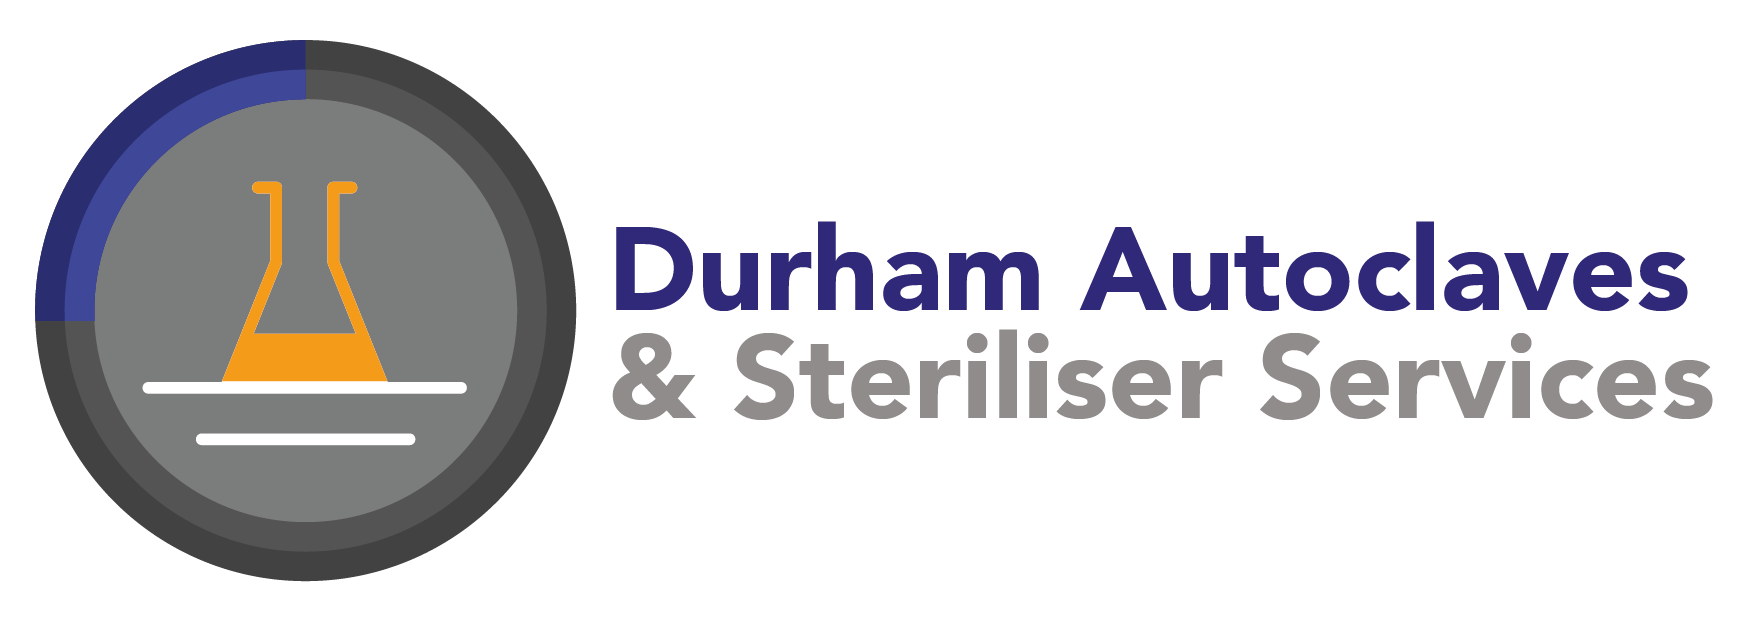 Durham Autoclaves and Steriliser Services - Autoclave Services - Autoclave Repair